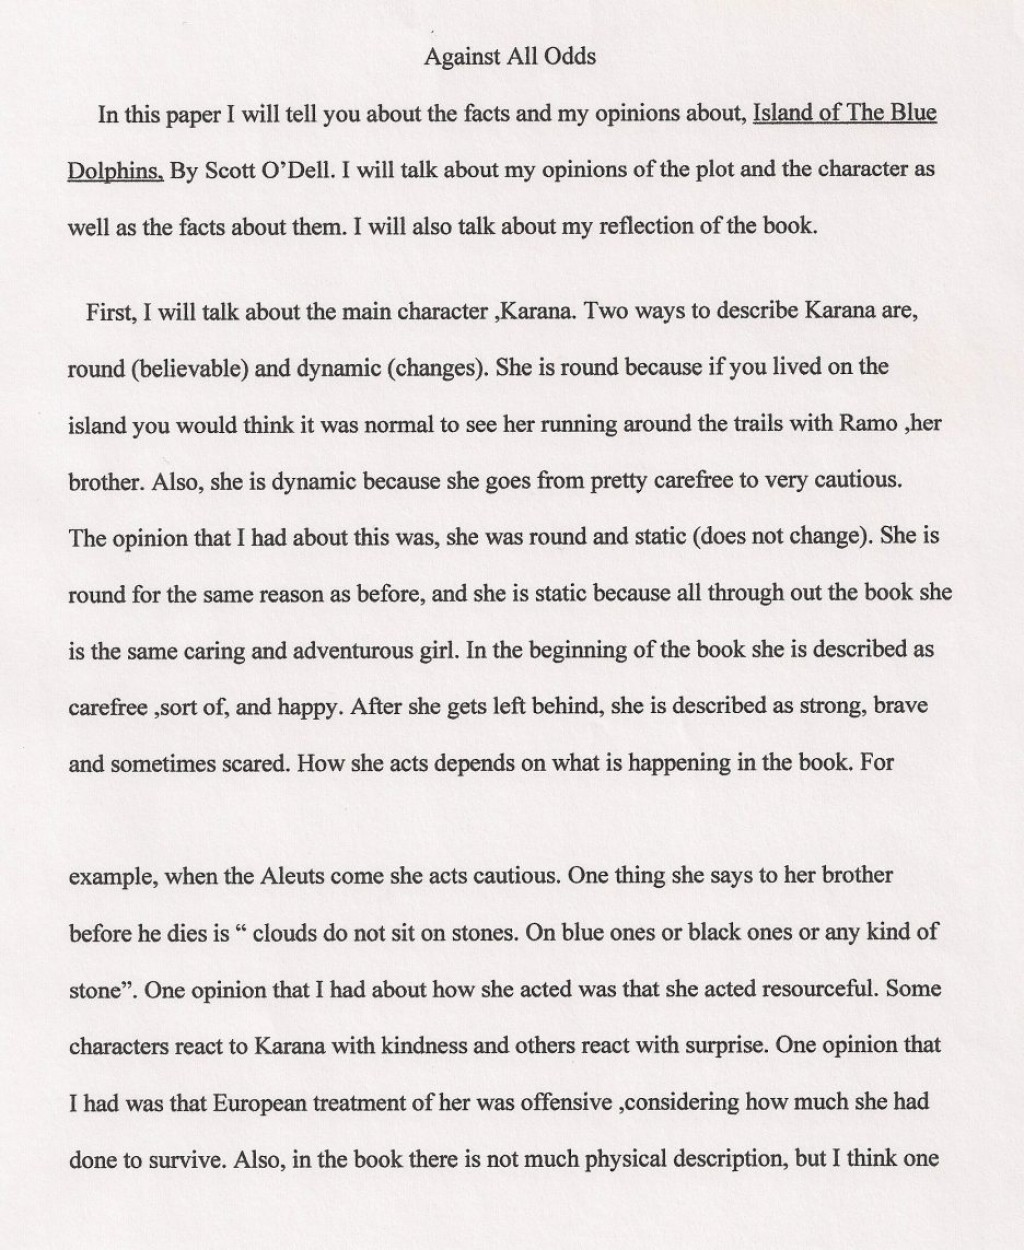 002 Taking Risks Essay Against All Odds Thesis Persuasive College In Life On Expository Benefits Of Example Business Writing About Top Narrative Large